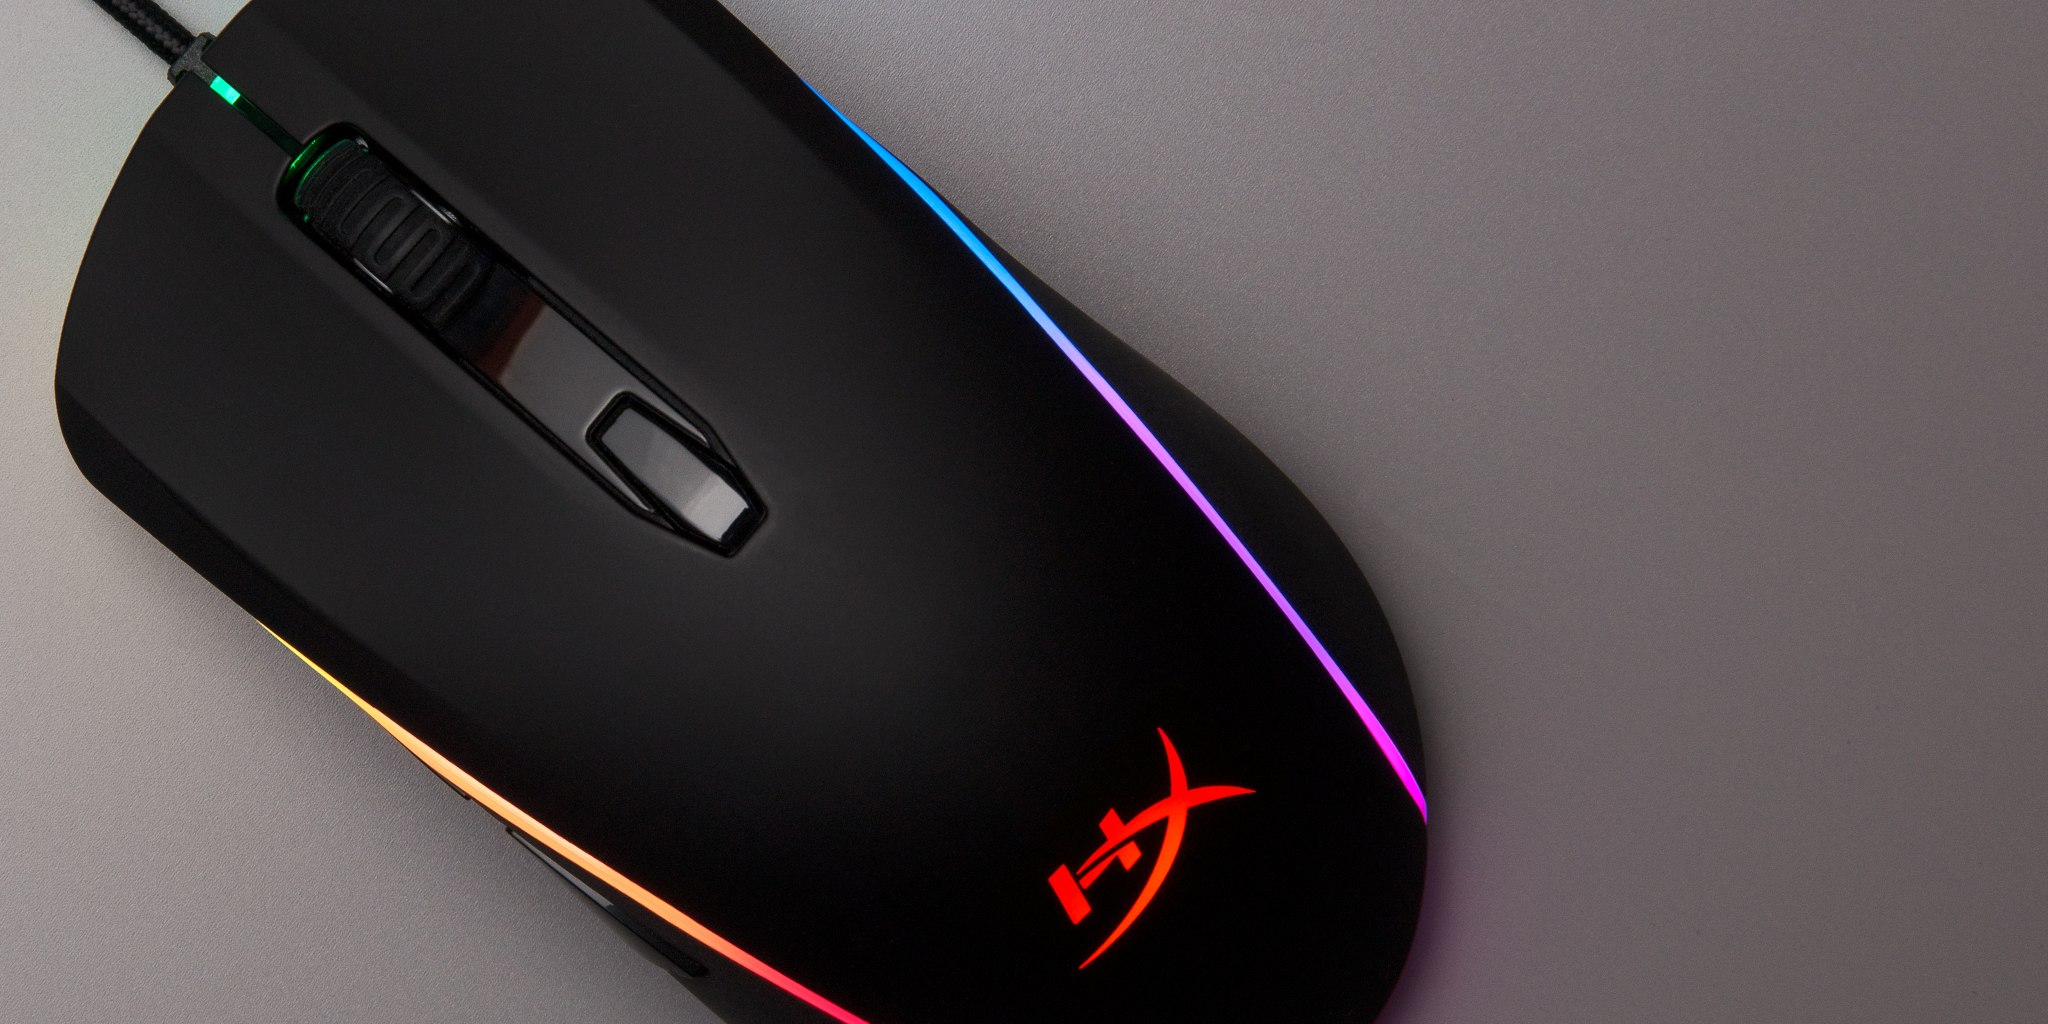 HyperX Pulsefire Surge gaming mouse